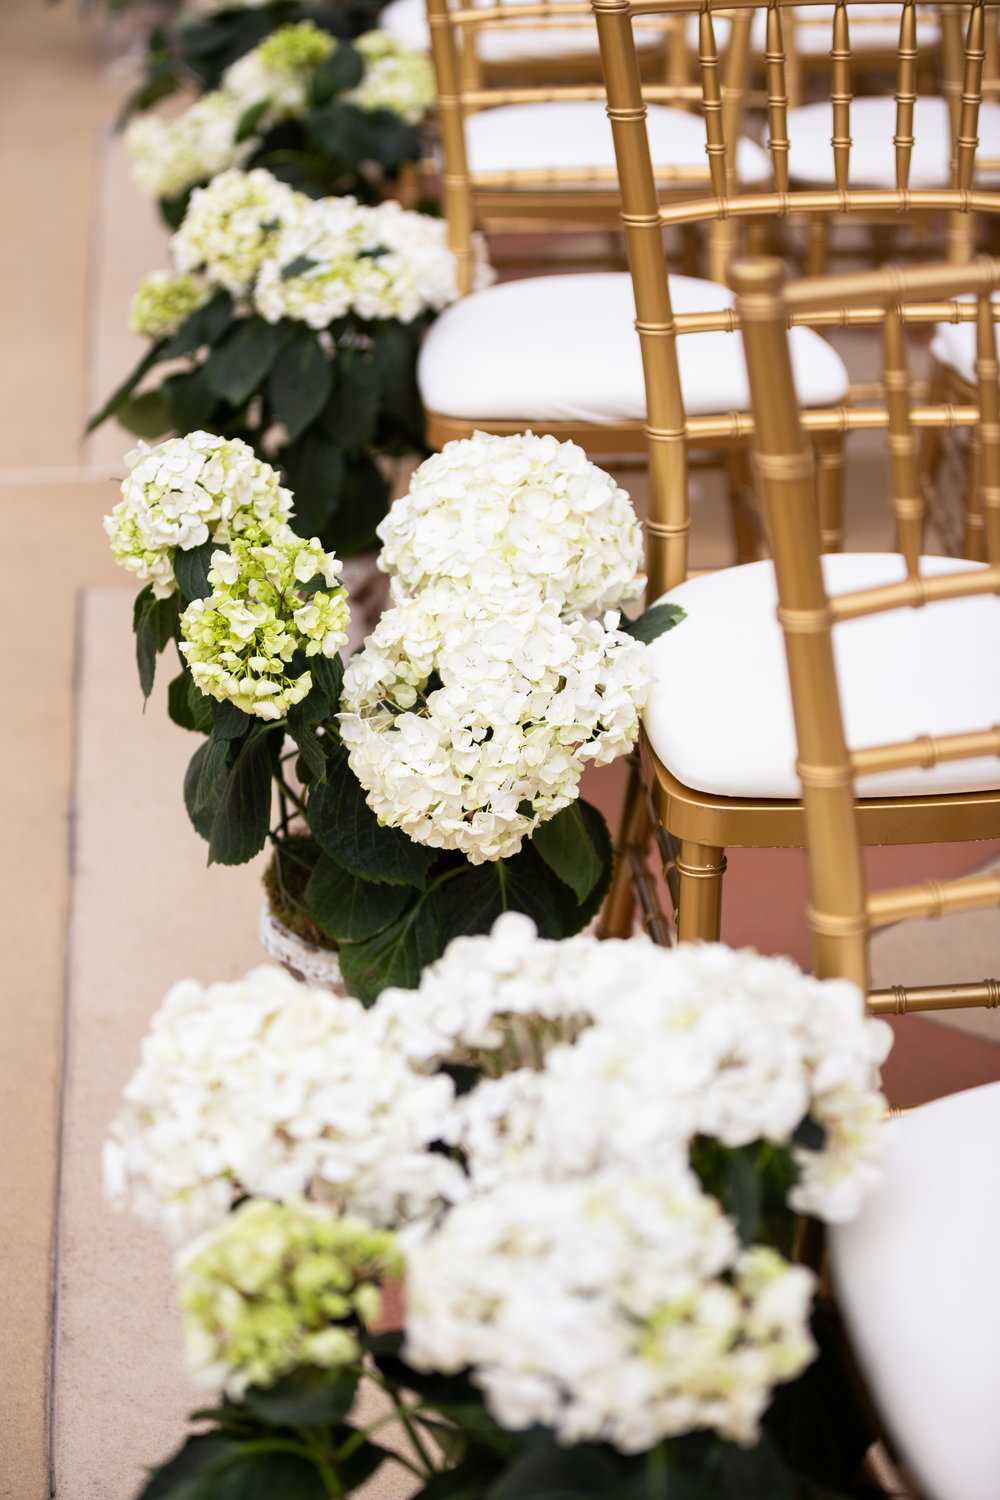 Potted hydrangea on the aisle at a wedding ceremony.  Wedding Planner:  Andrea Eppolito Events   |   Photography  D2 Tuscan Wedding Photography   |  Videography  M Place Productions   |  Venue & Catering:  Bellagio   |  Floral & Decor:  Destinations by Design    |  Lighting:  LED Unplugged   |  Music: Classical Entertainment &  DJ Mike Fox   |  Hair & Make Up:  Amelia C & Co